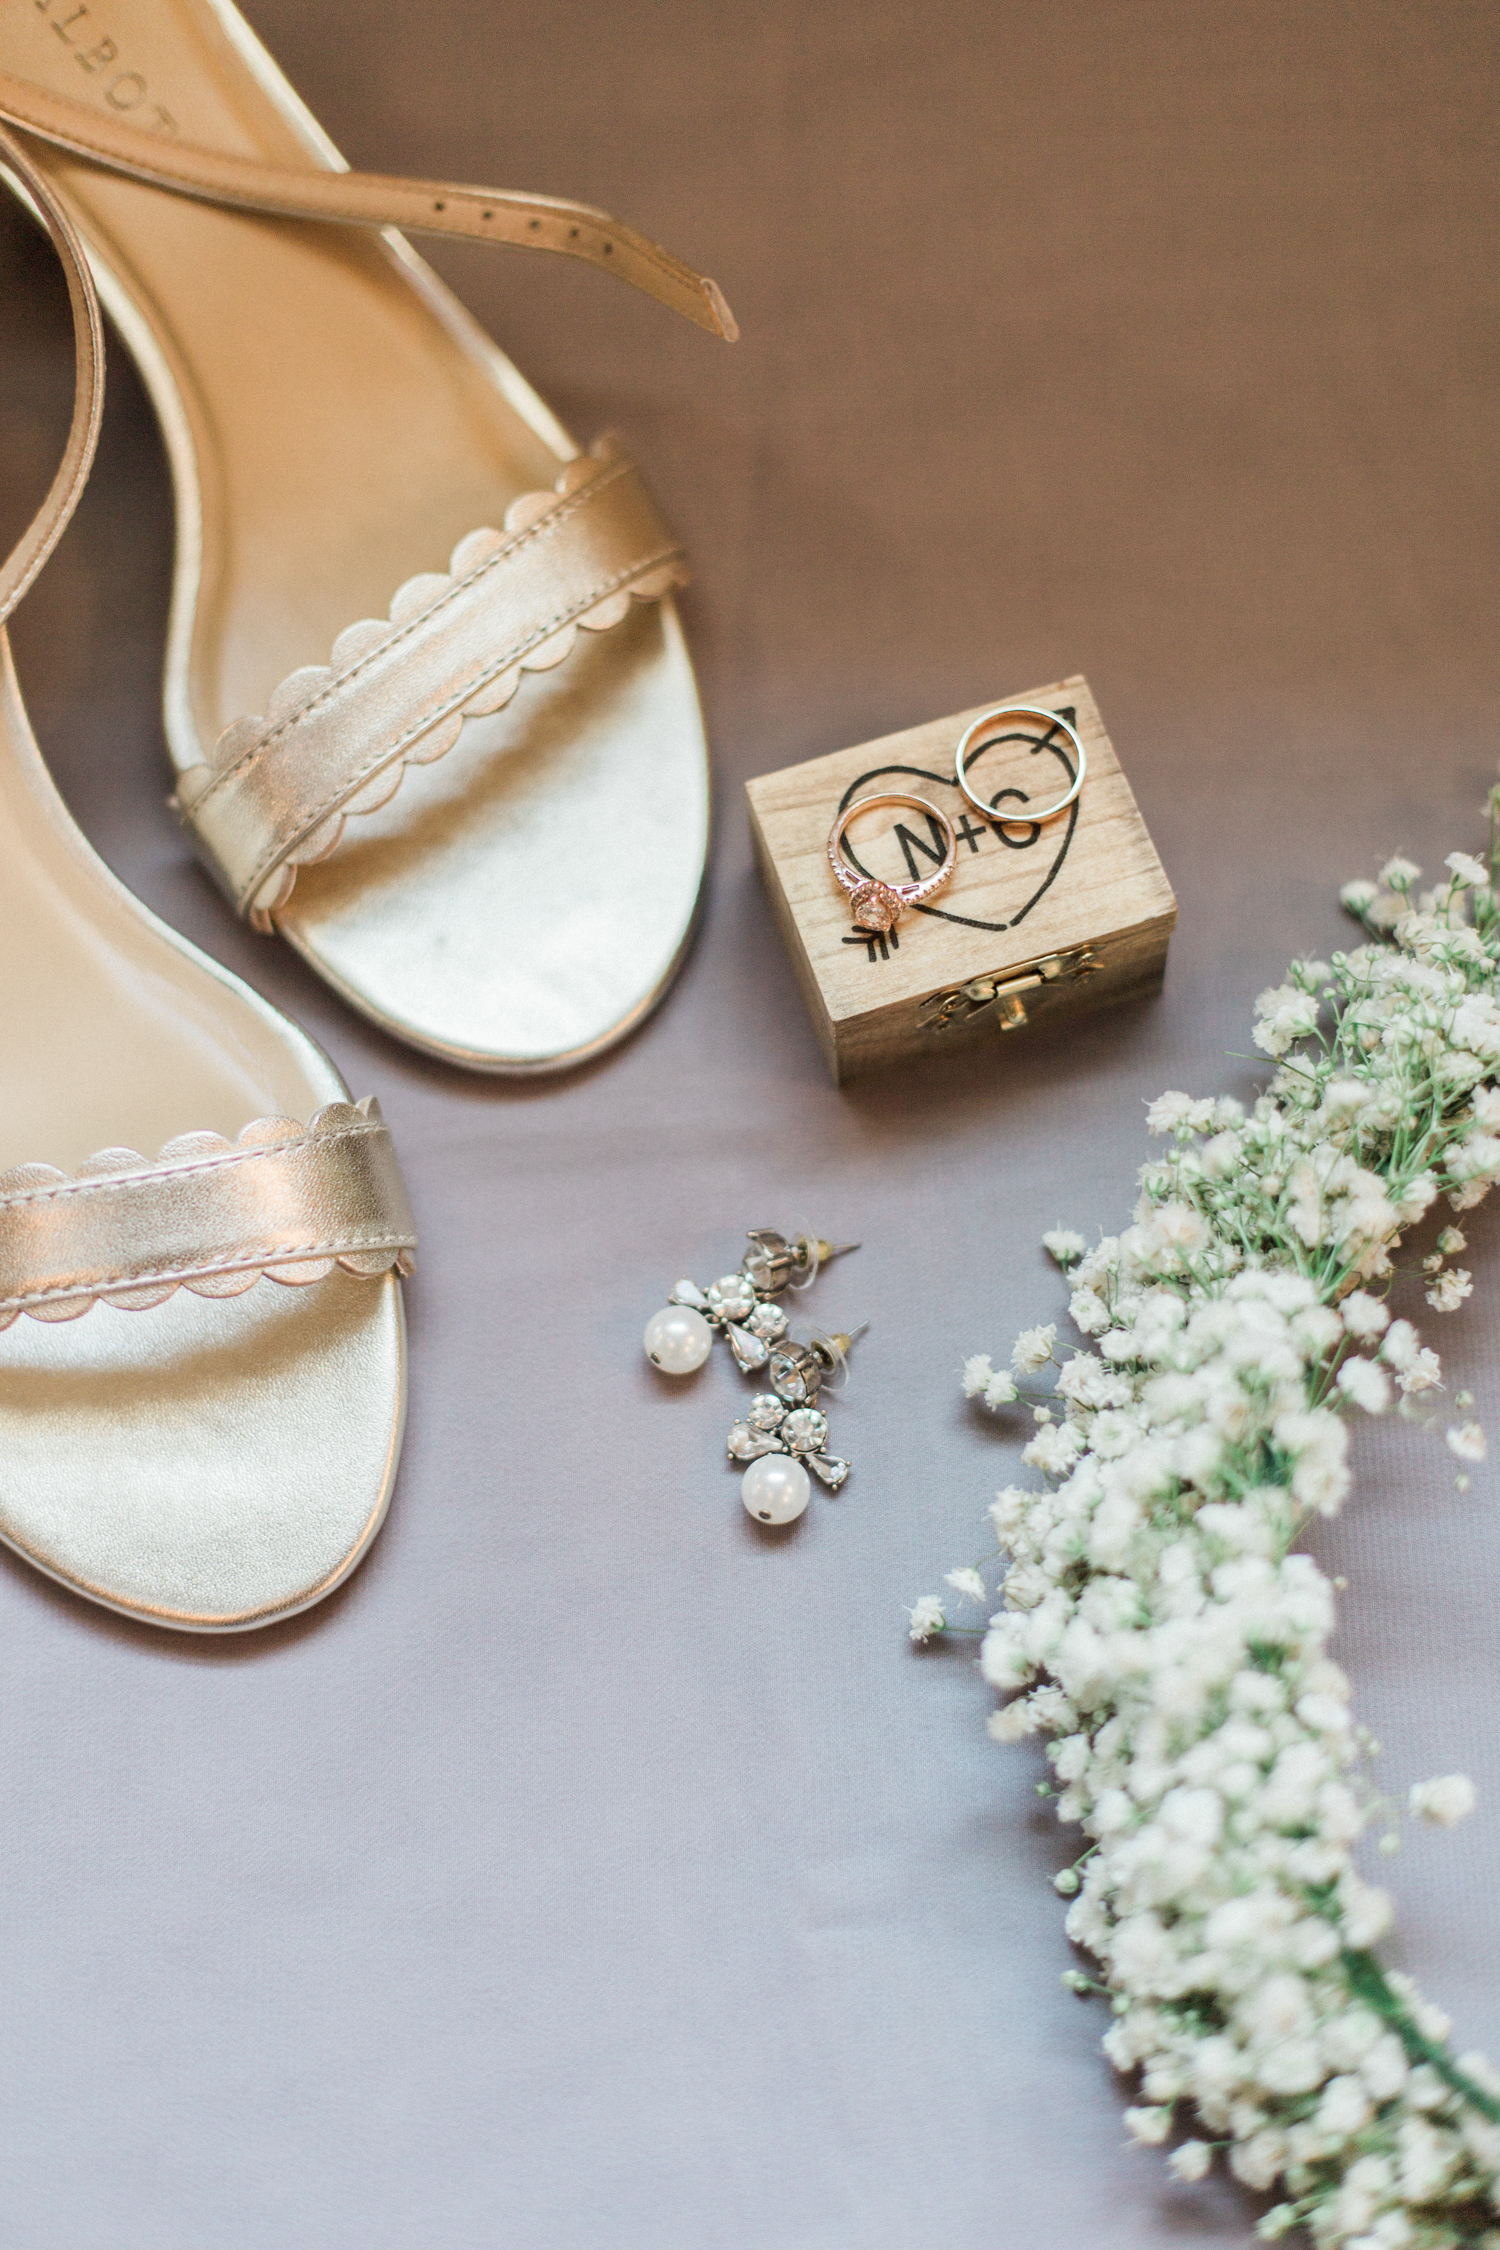 Summer, outdoor, barn wedding in north Georgia at Hays McDonald Farm in Jefferson, Georgia. Photo by Kesia Marie Photography - Fine Art Wedding Photographer. Baby's breath floral crown, and wood burned ring box.